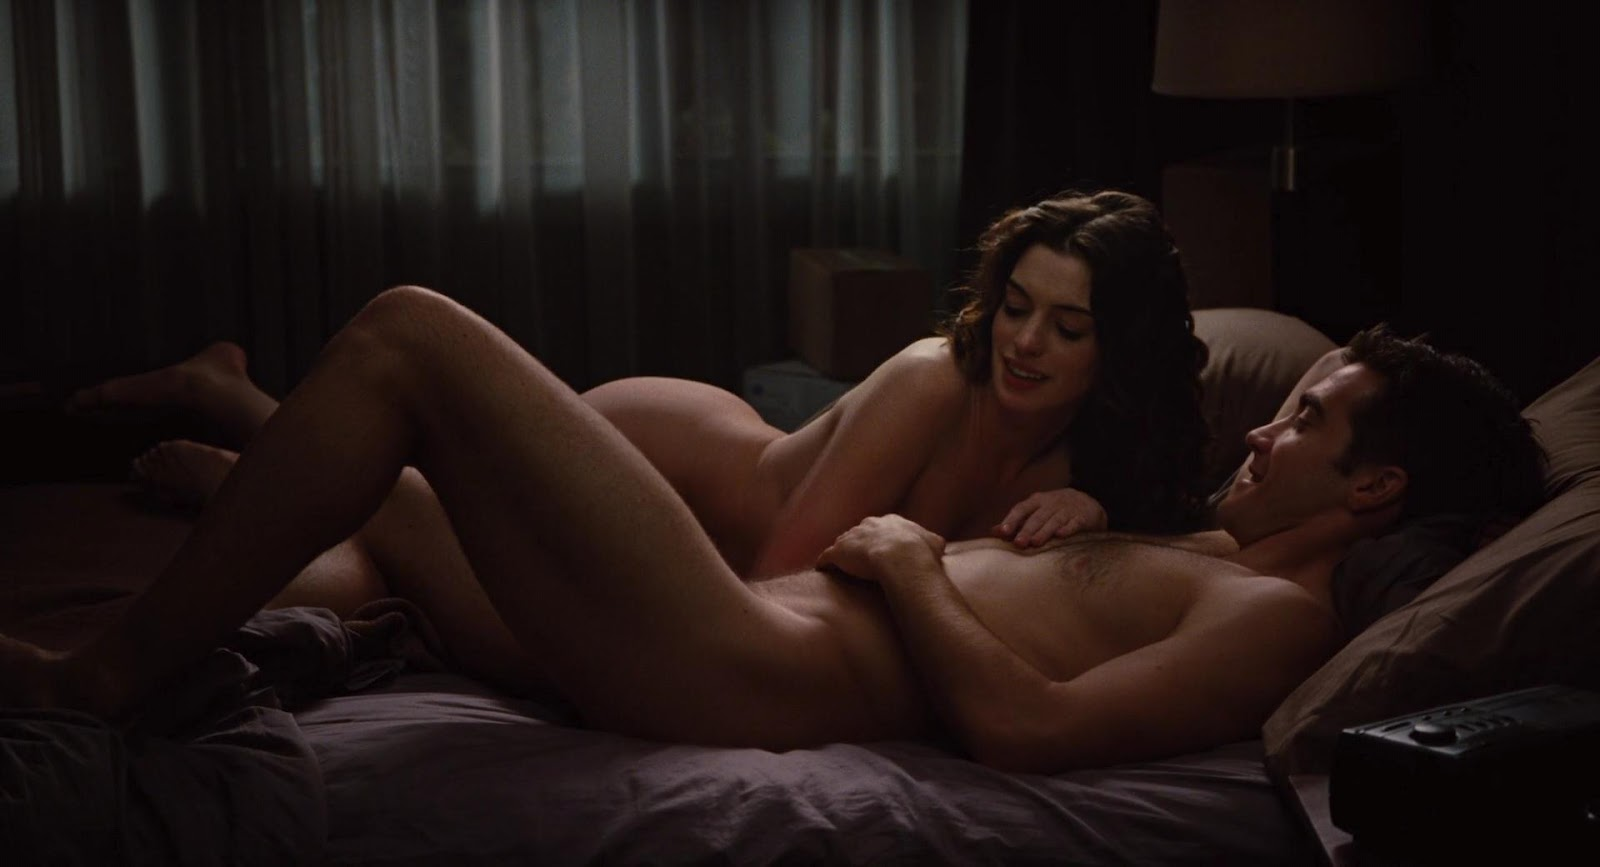 Saadet aksoy nude sex scene in twice born scandalplanetcom